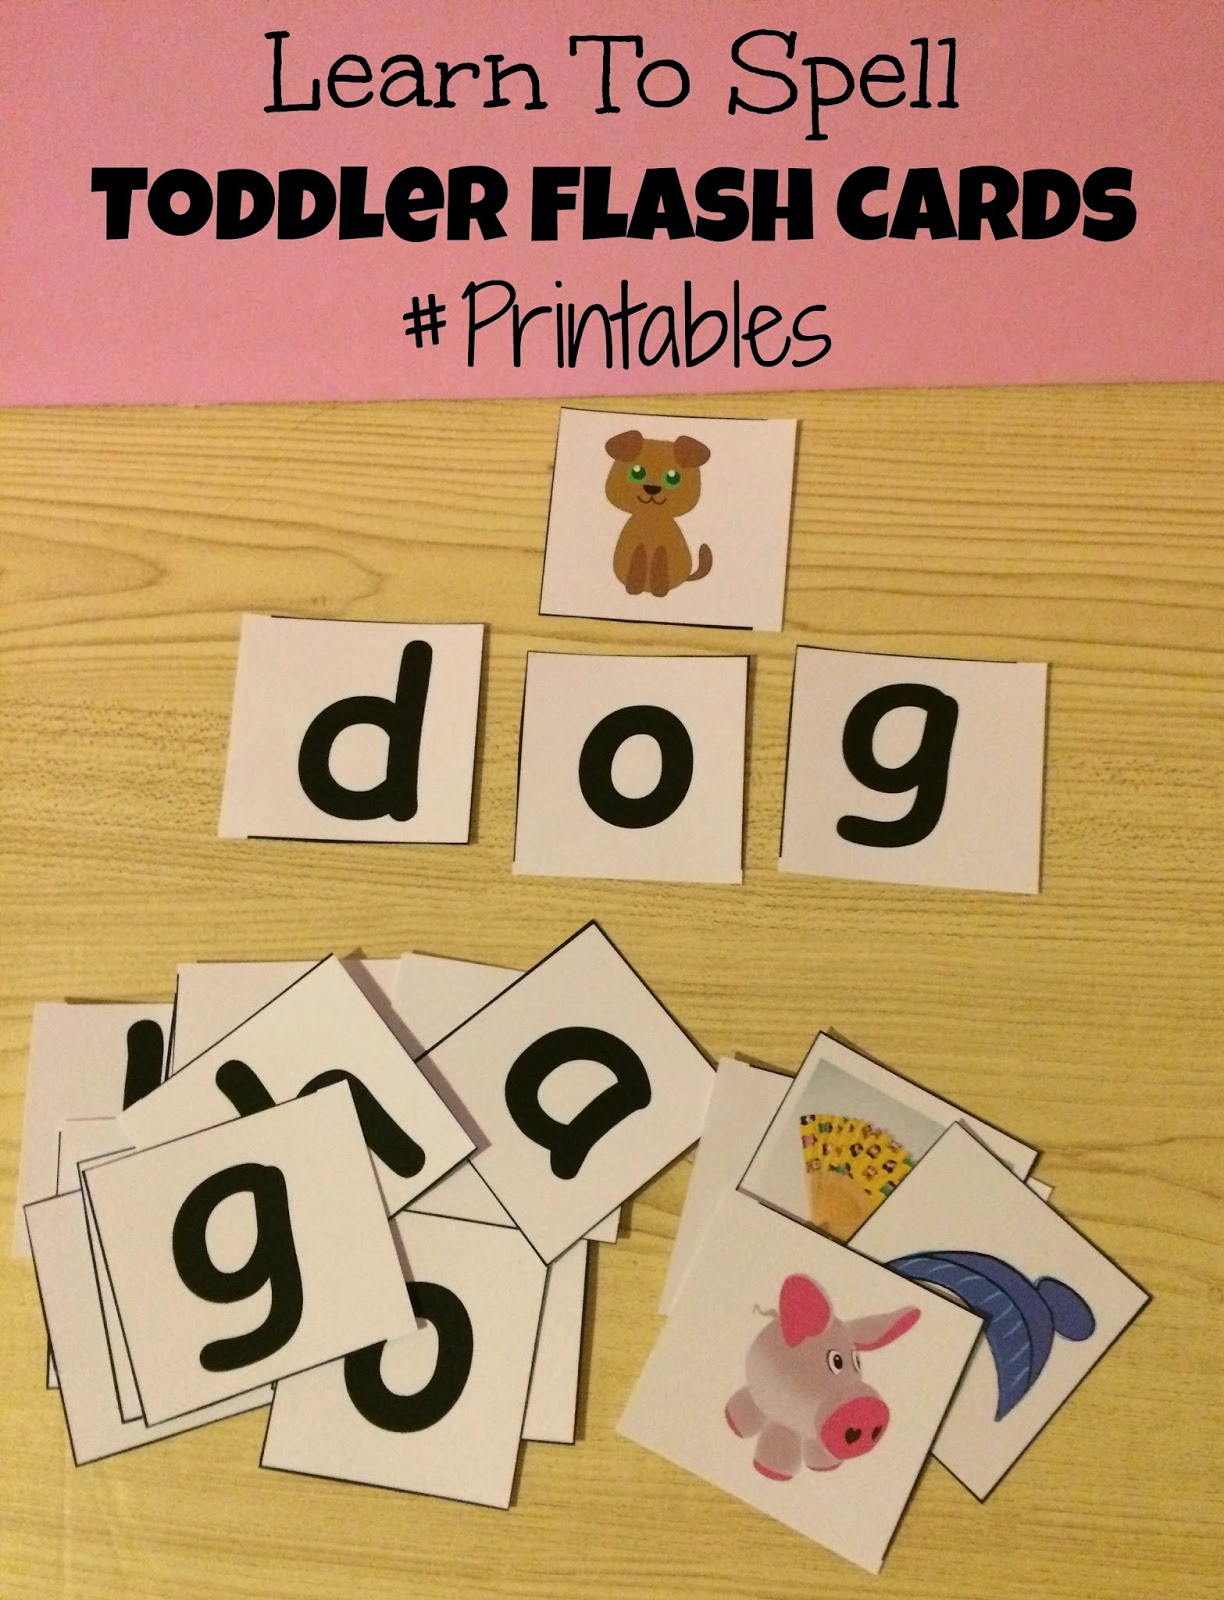 Learn To Spell Toddler Flash Cards Printable